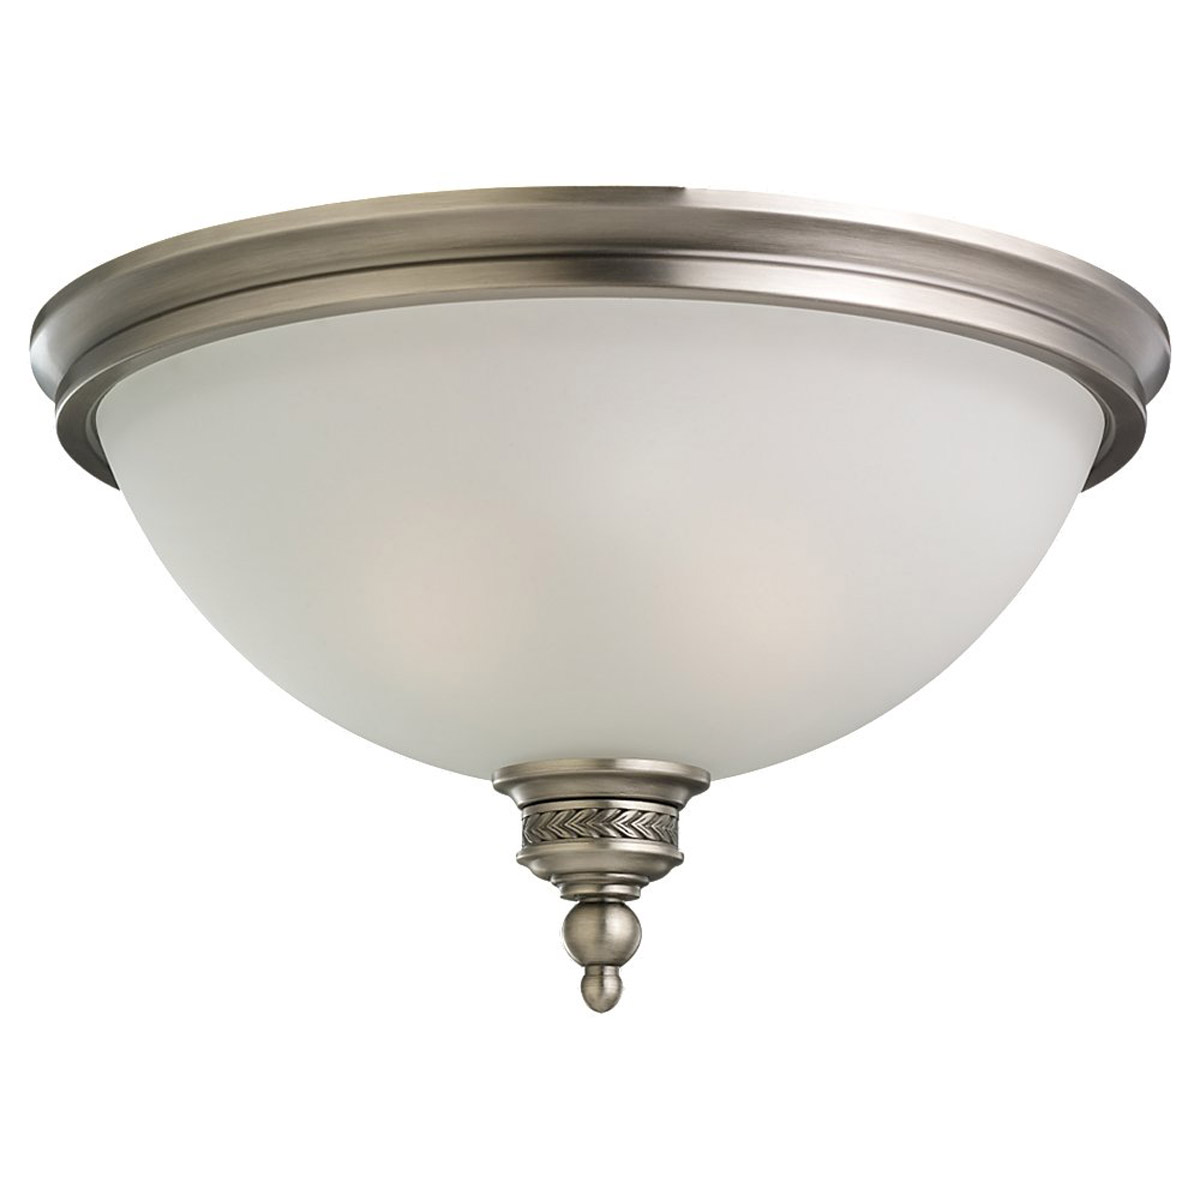 Sea Gull Lighting Laurel Leaf 2 Light Flush Mount in Antique Brushed Nickel 75350-965